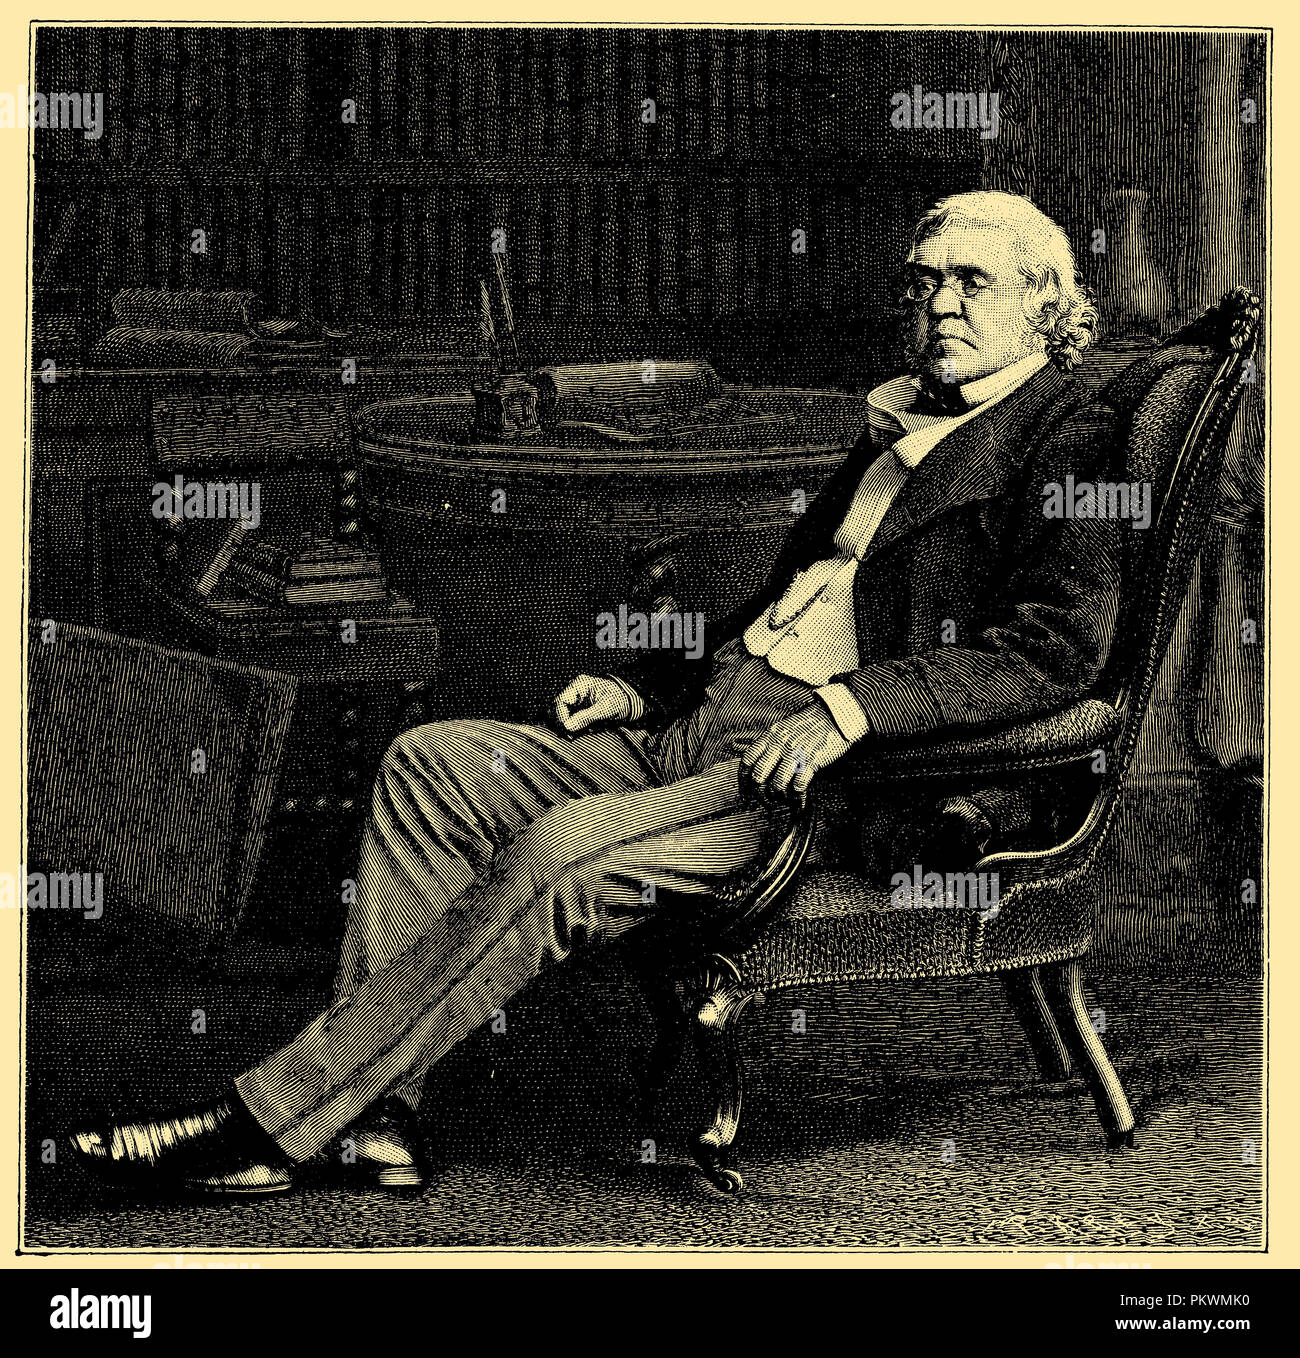 William Makepeace Thackeray (born 12 August 1811, died 24 December 1863), English writer. After a photograph of the Stereoscopic Company to London, - Stock Image